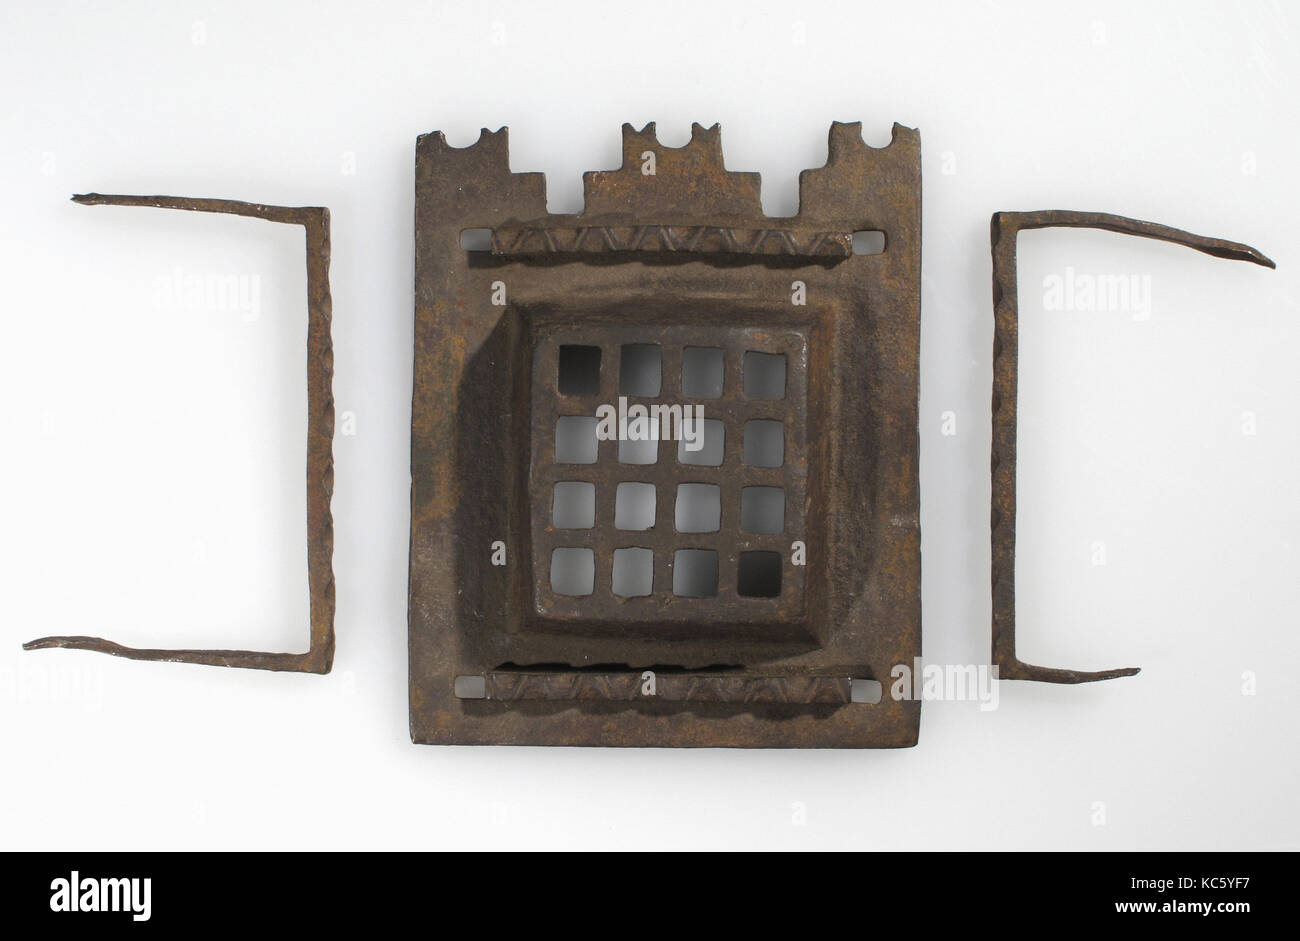 Grille, 15th–16th century, European, Iron, a. H. 5 3/8 in. ( 13.7cm), W. 4 1/4 in. (10.8cm), Metalwork-Iron - Stock Image